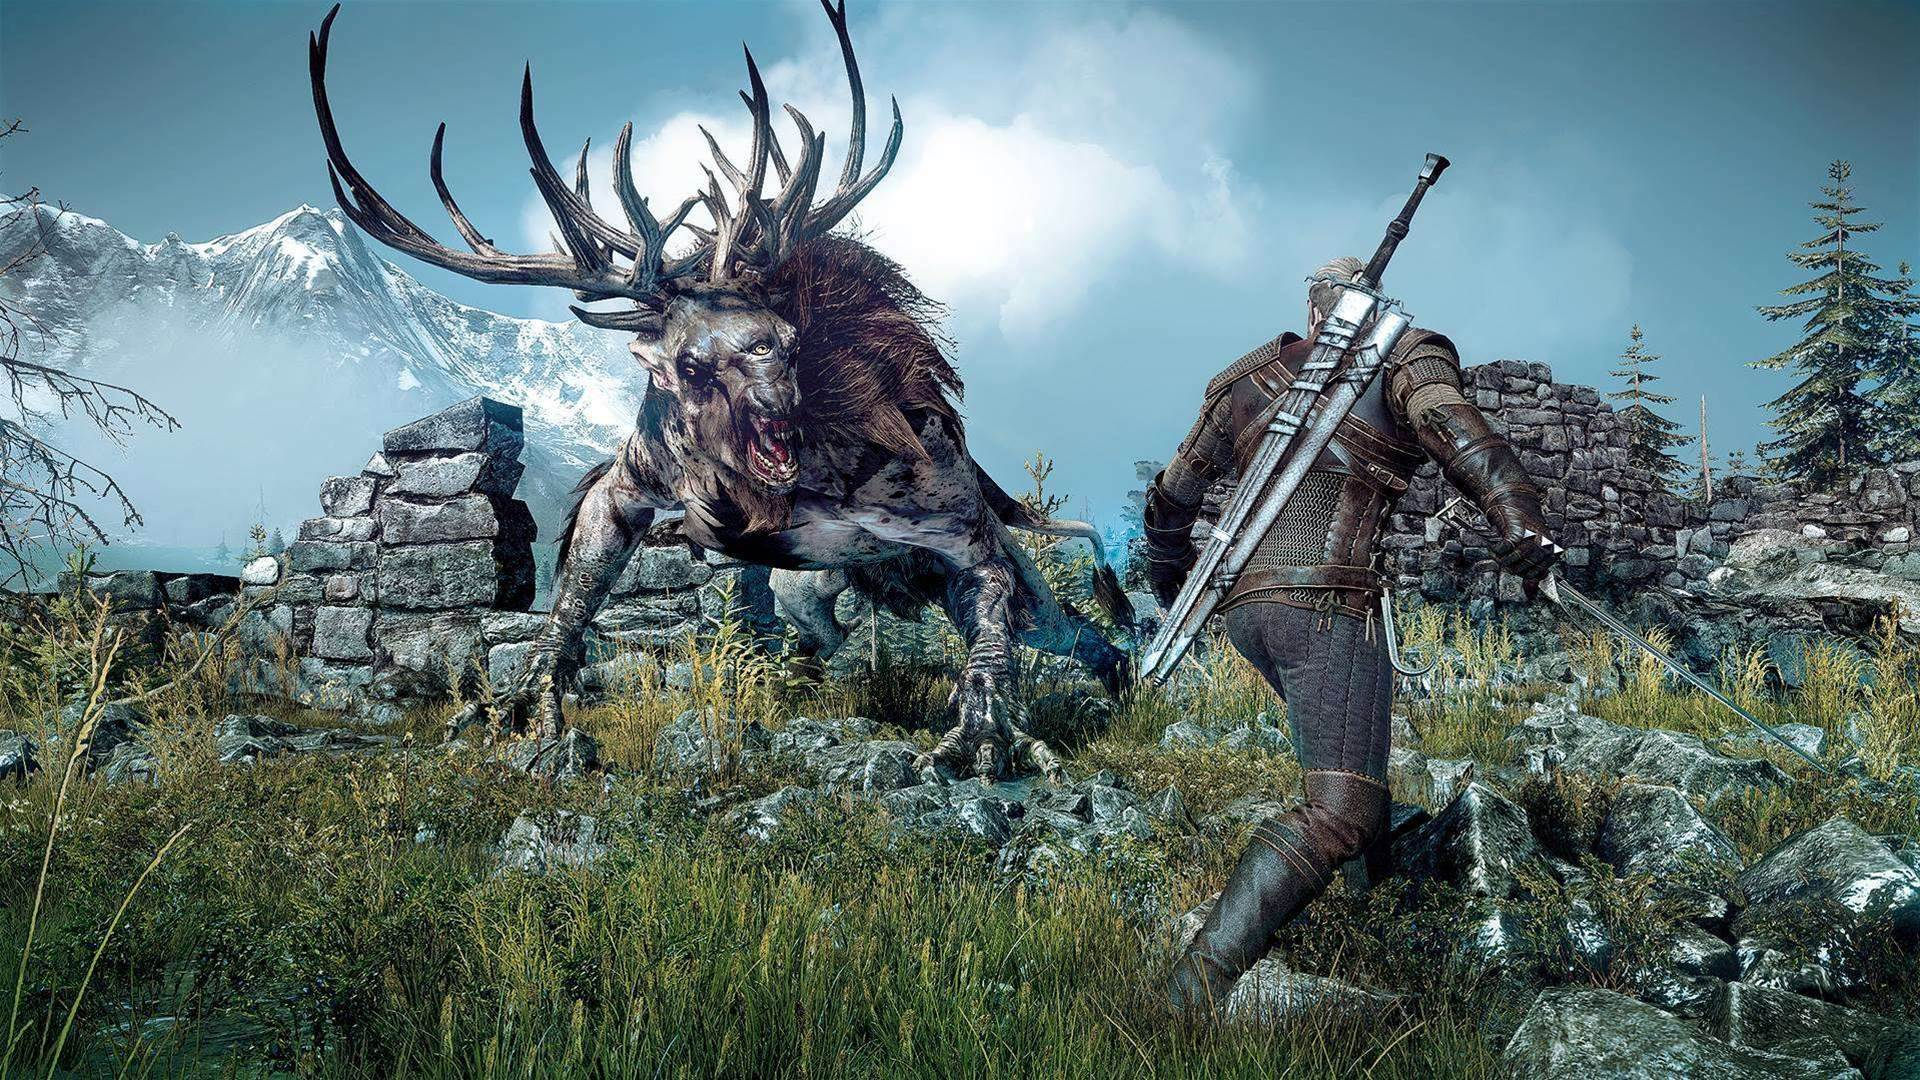 It's a bad day to be a horse in The Witcher 3: The Wild Hunt opening cinematic